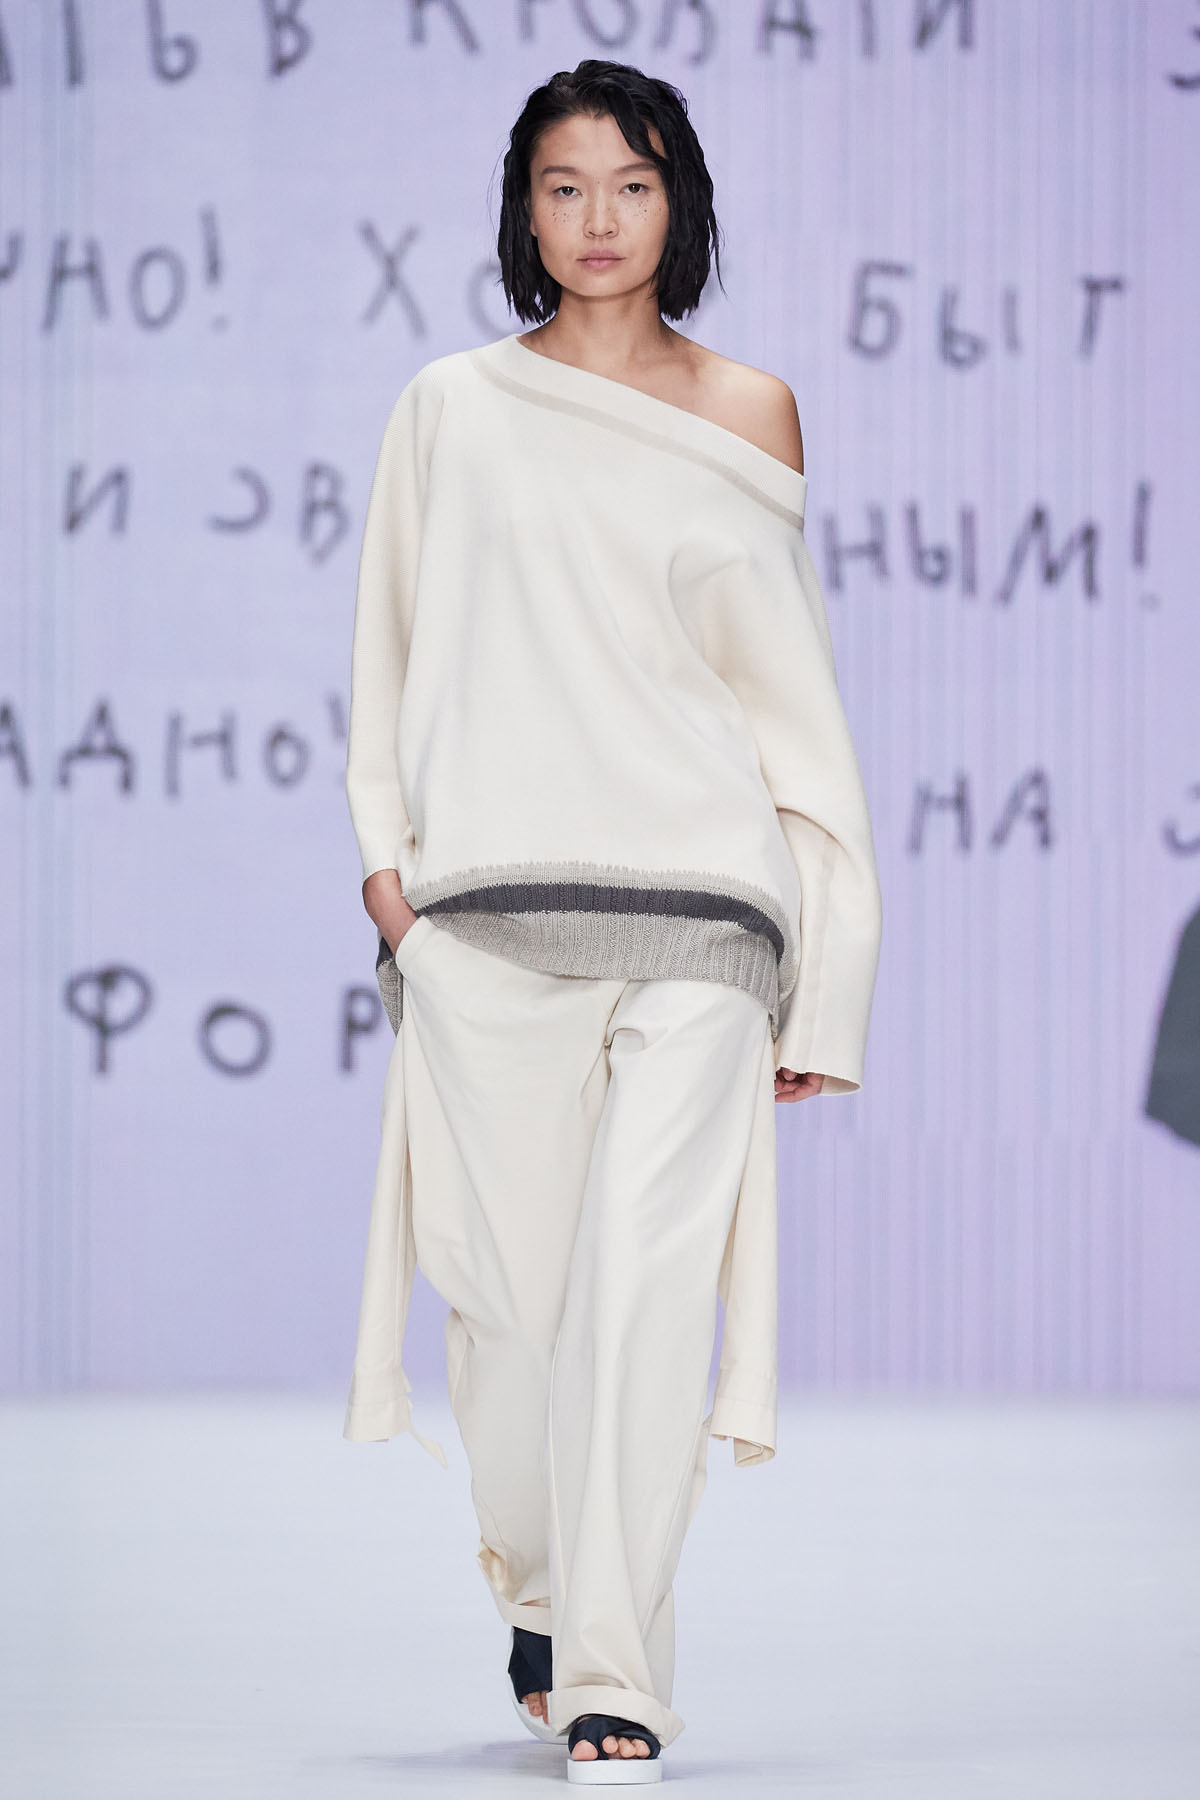 Mercedes Benz Fashion Week Russia S/S 2018 - Day Two